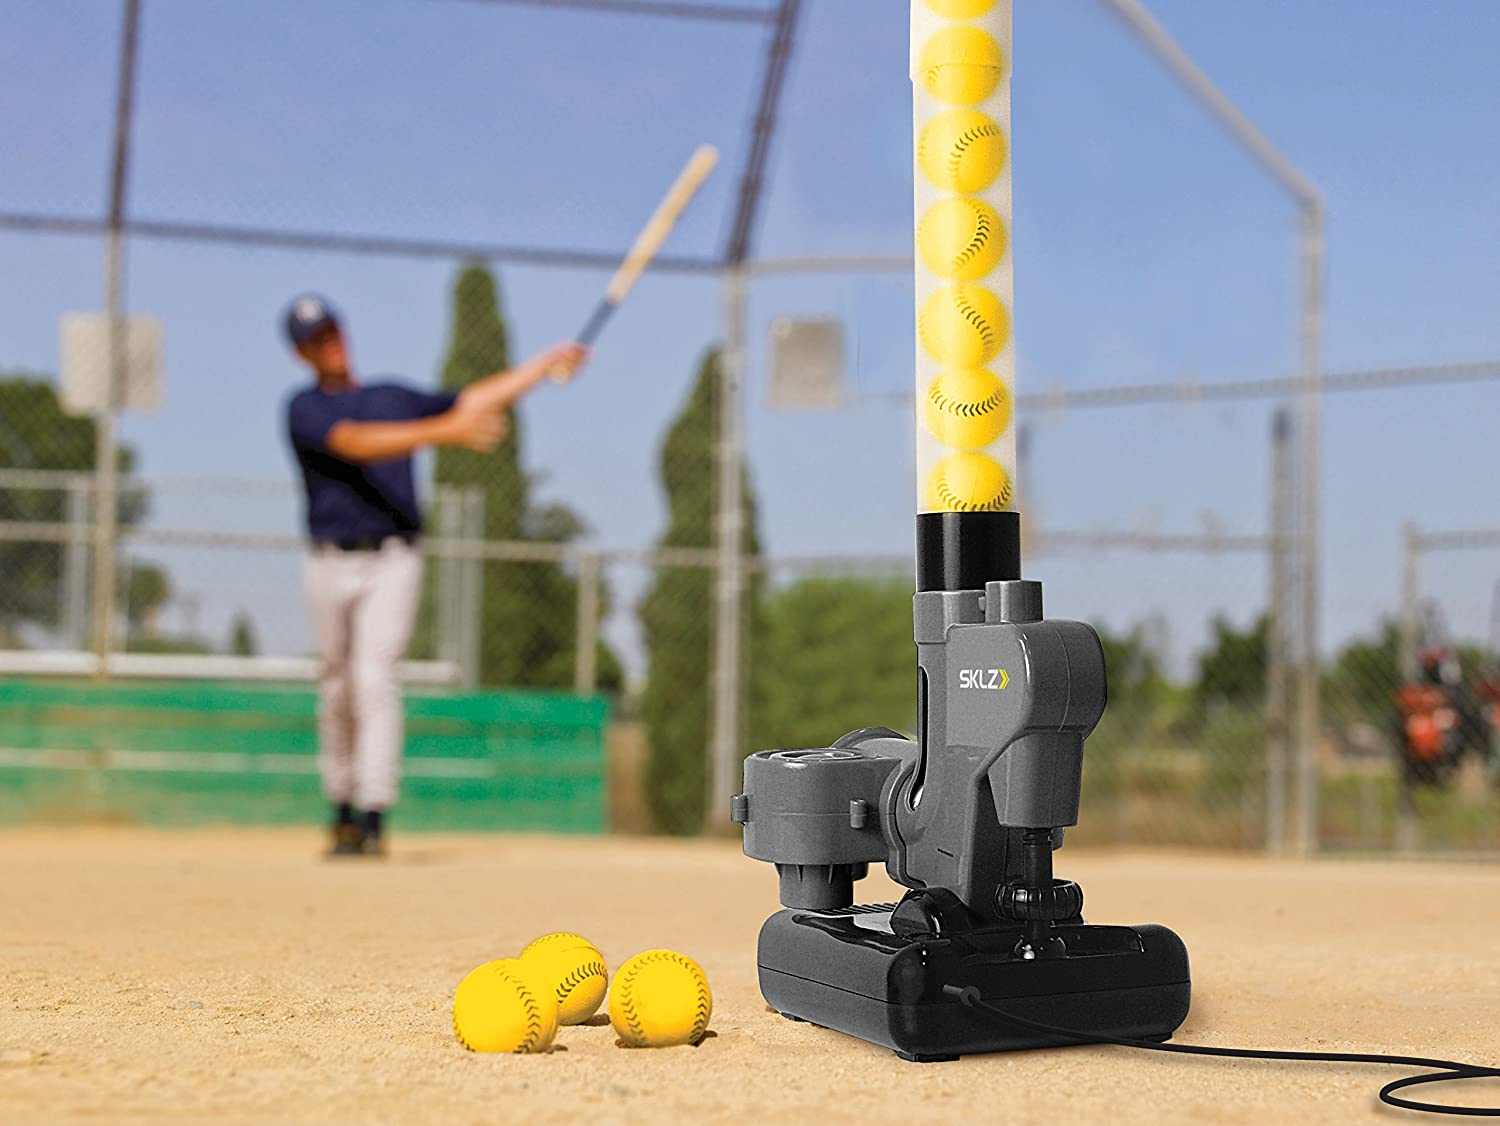 BEST BASEBALL PITCHING MACHINE